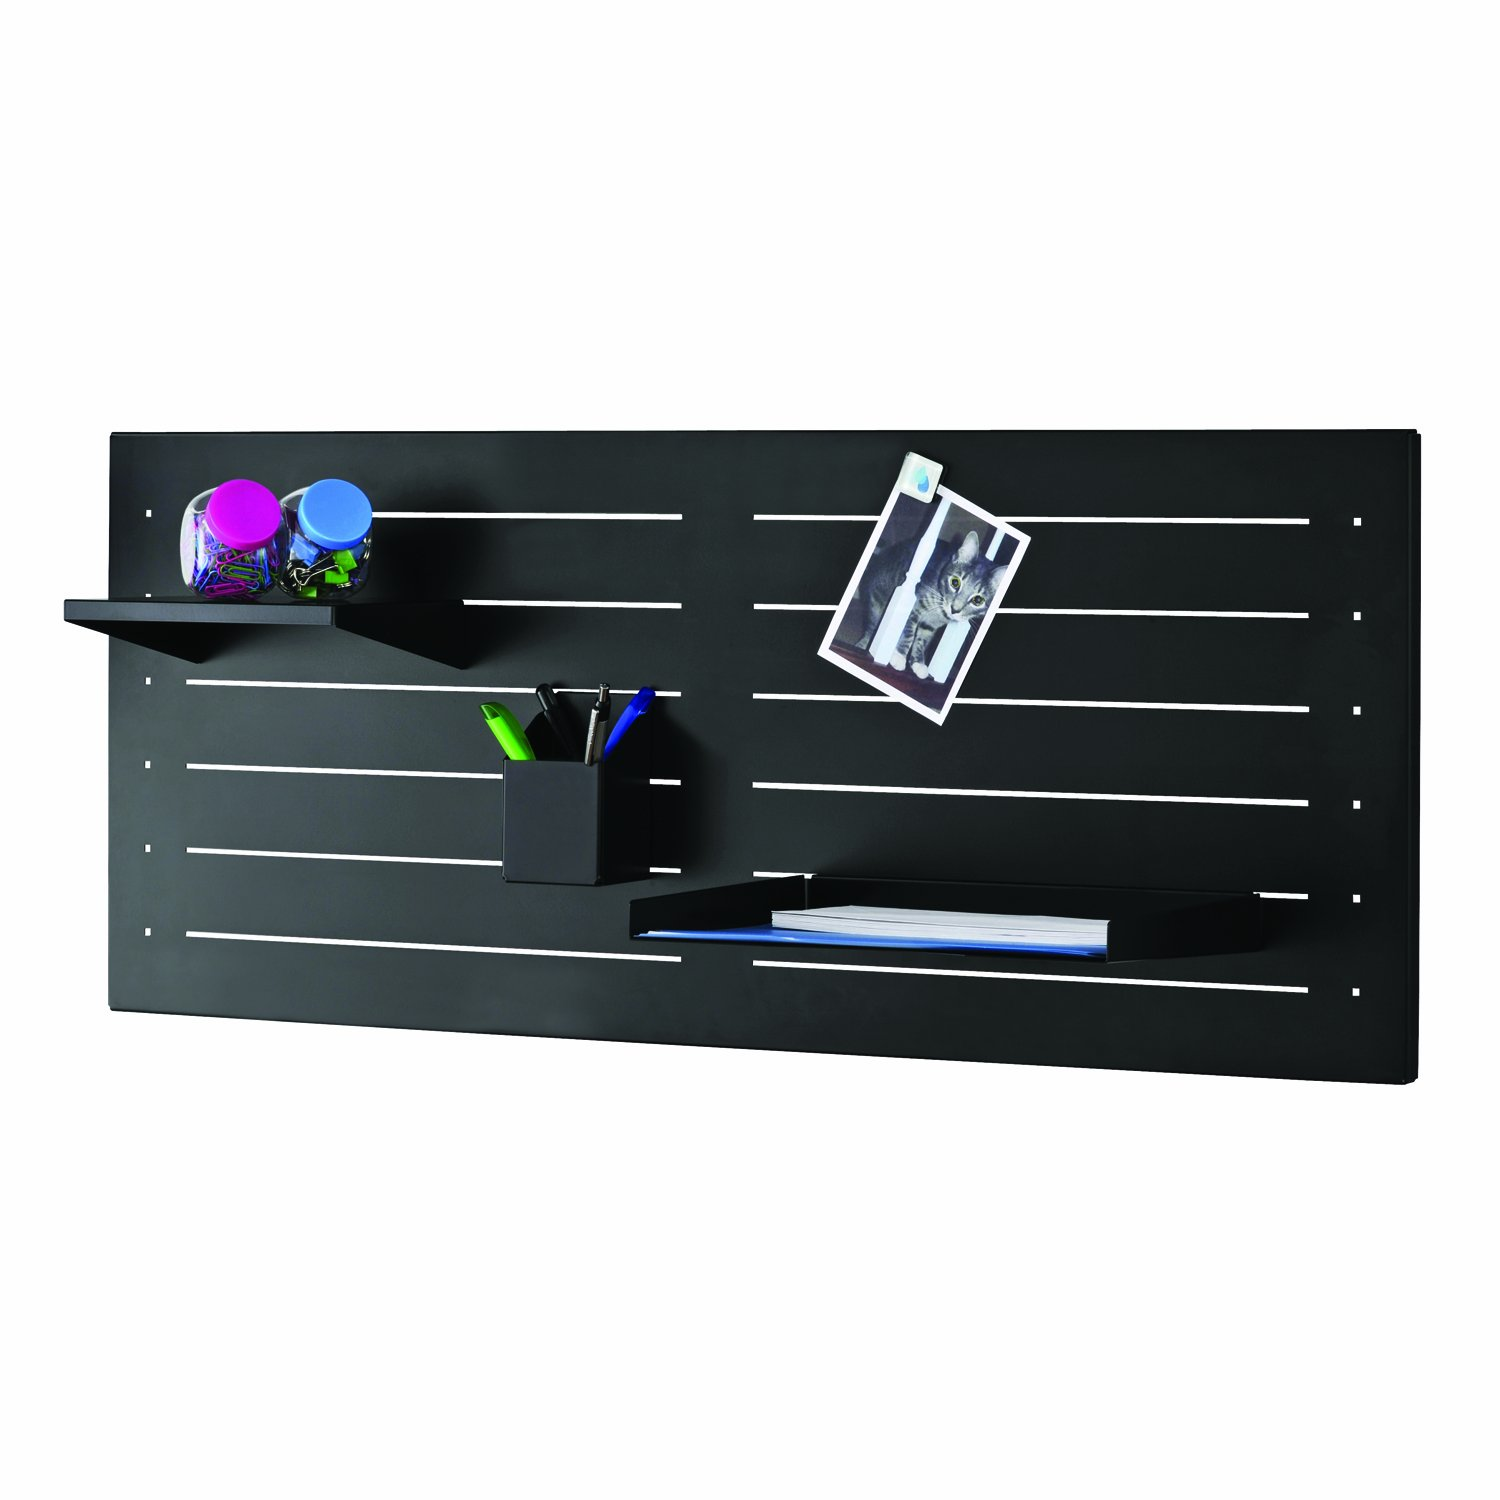 1 Shelf Piece 264P20250 Silver 8 by 6 by 1.75-Inch Steelmaster Slot System Small Shelf Only